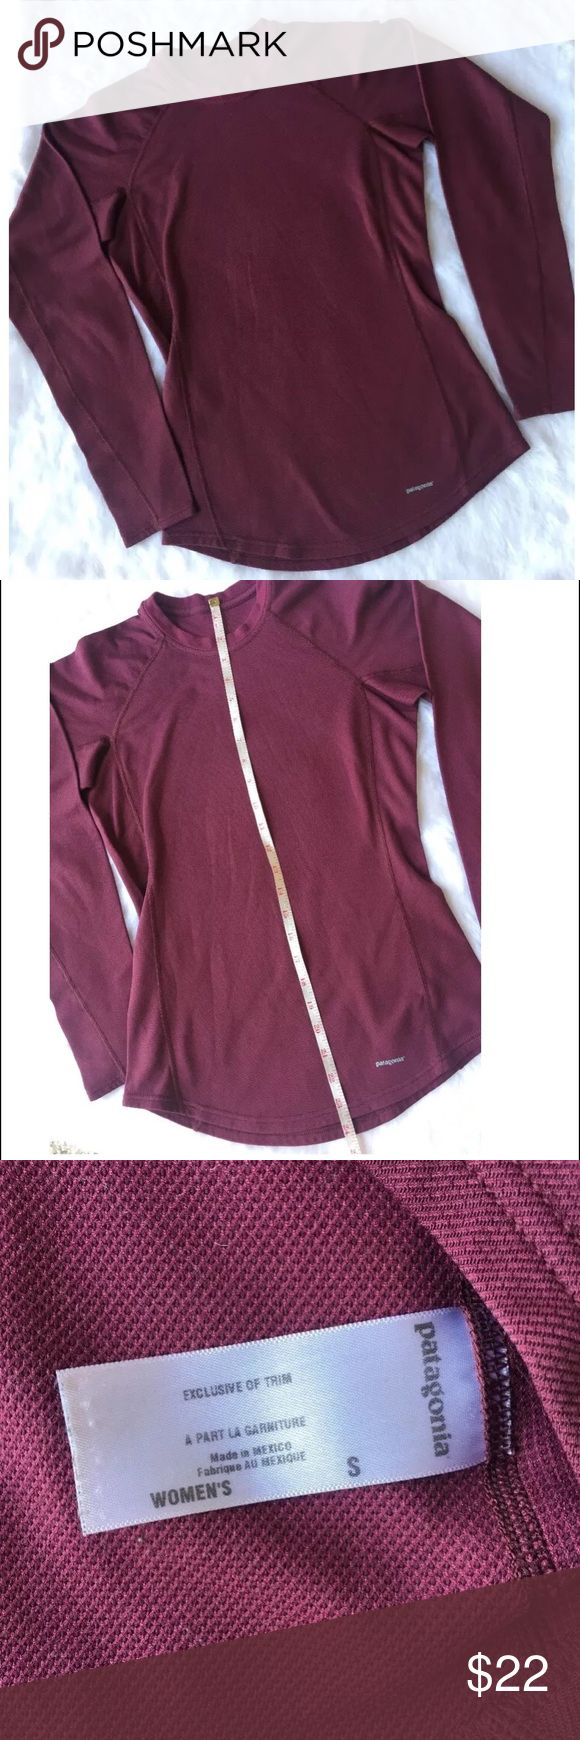 Patagonia Capilene Dark Red Long Sleeve Top S Patagonia  Capilene  Base layer long sleeve  Small  Dark Red  Length - 25, Shoulders - 15, Sleeves - 21, Chest - 34 inches  Pre owned- clean, no rips, worn a few times Patagonia Tops Tees - Long Sleeve